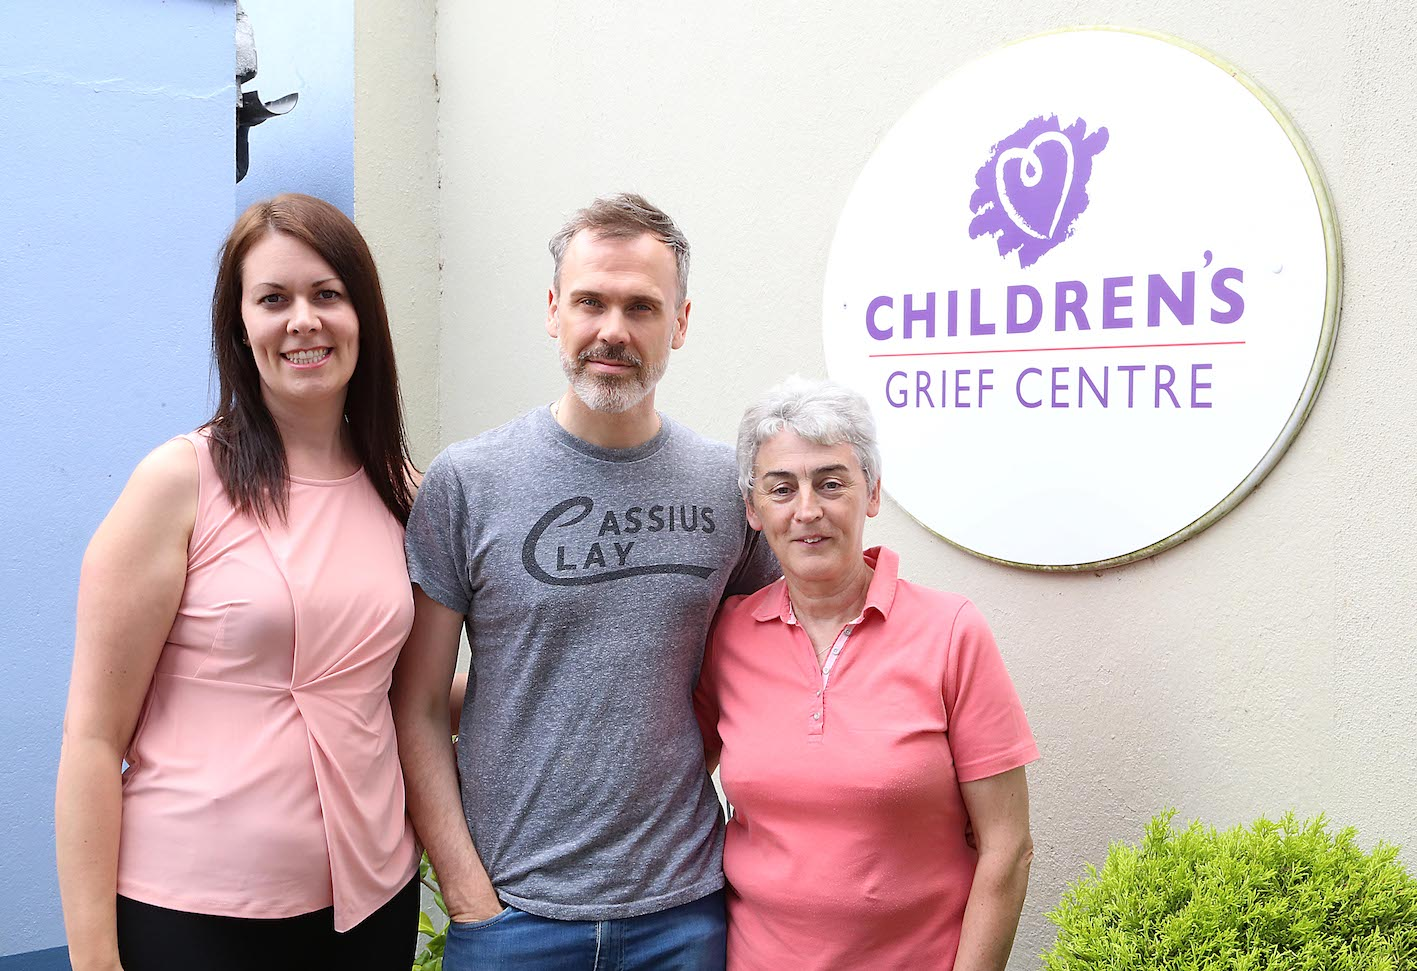 Childrens Grief Centre funding